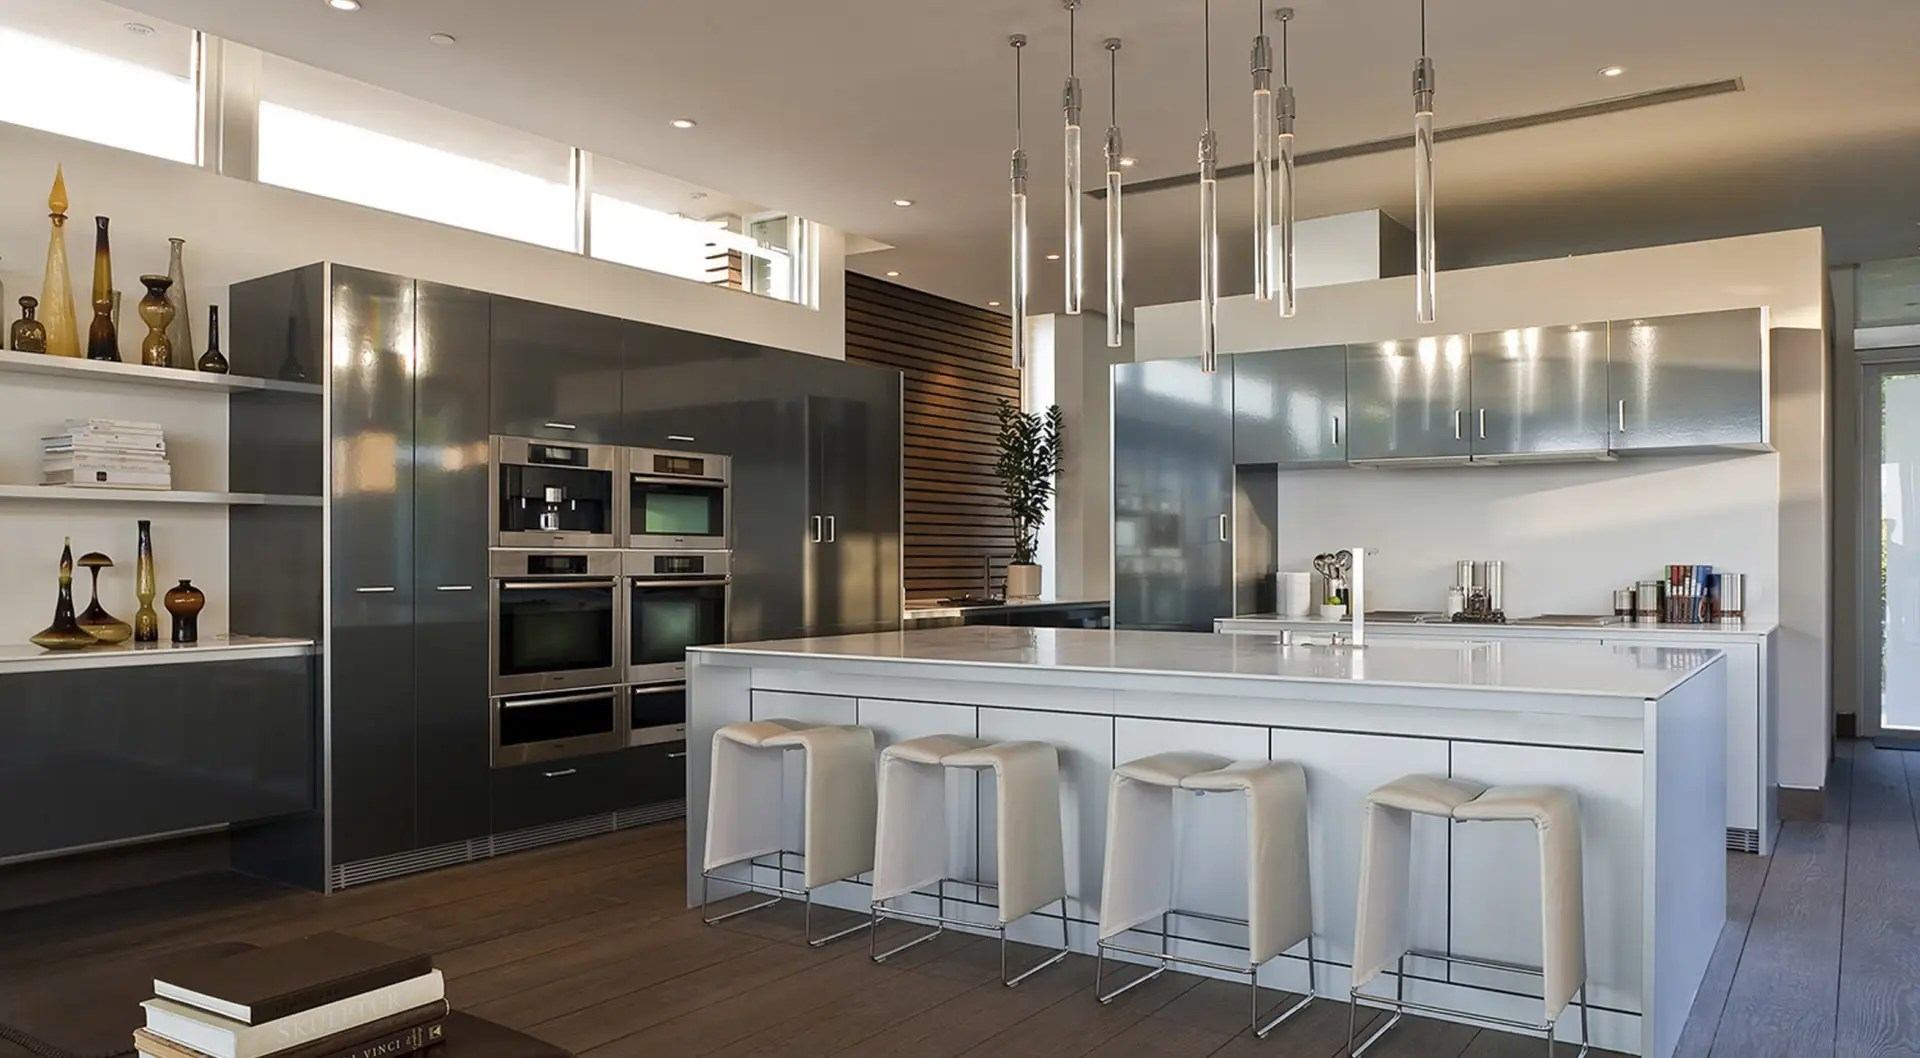 The kitchen is designed to accommodate a large party.